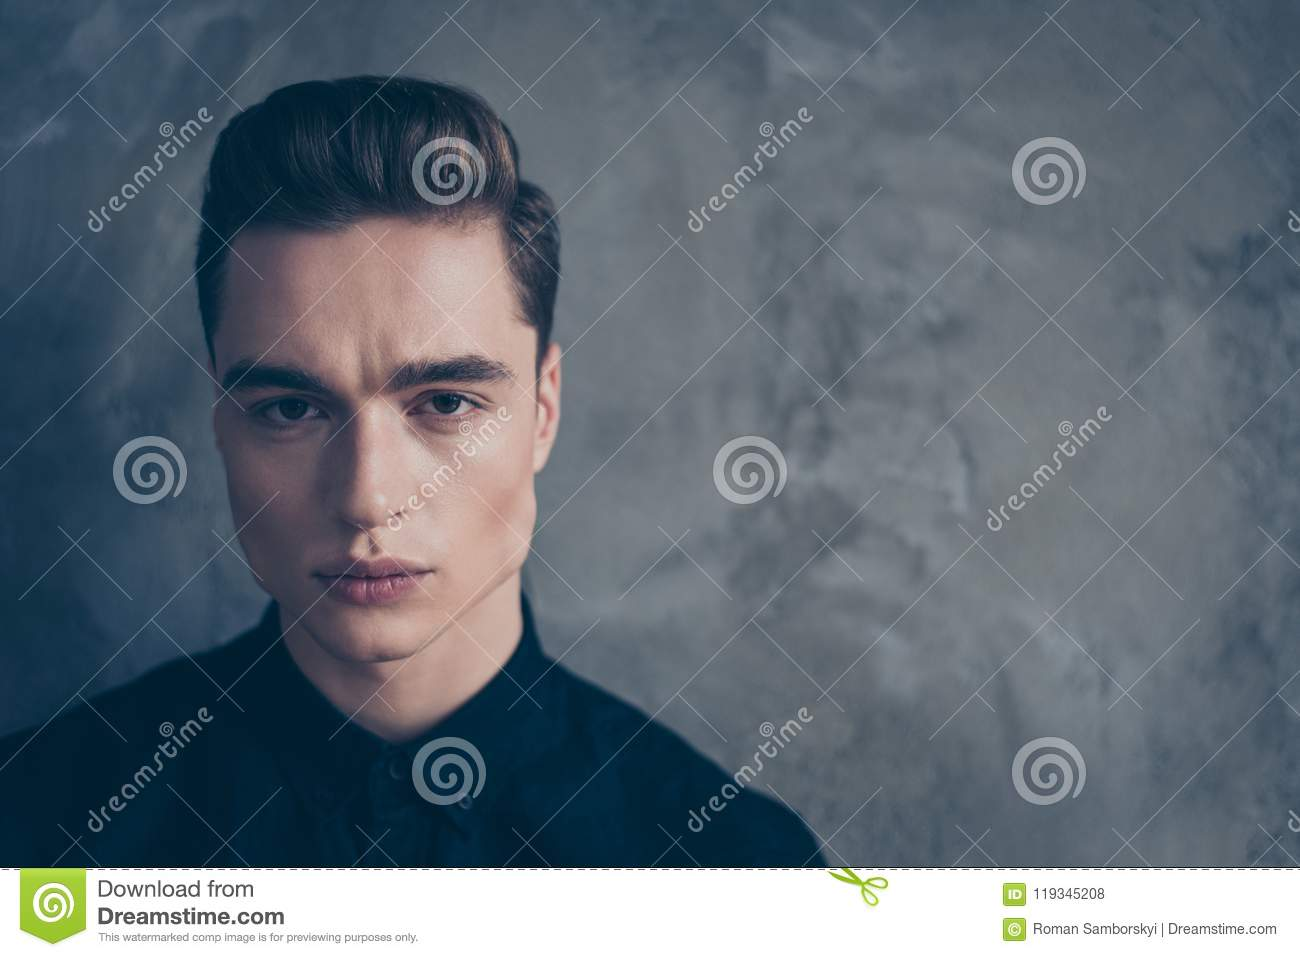 f6b3dfdf7cc Close up portrait of young attractive serious guy in black shirt looking  straight in the camera, behind is grey background